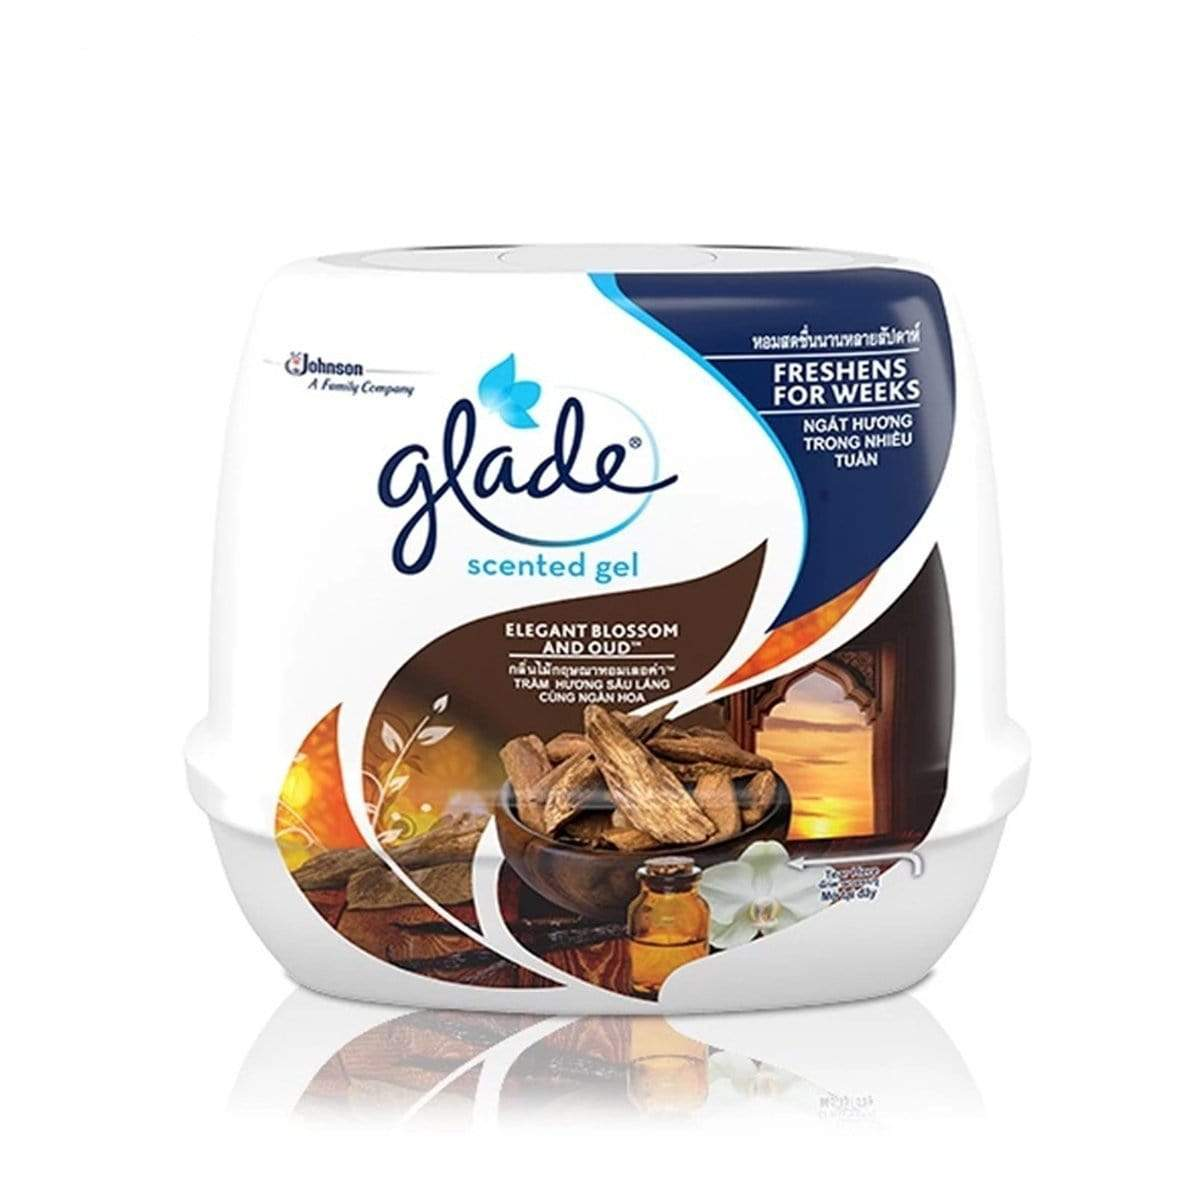 Glade Scented Gel Oud Blossom Air Freshener 180g